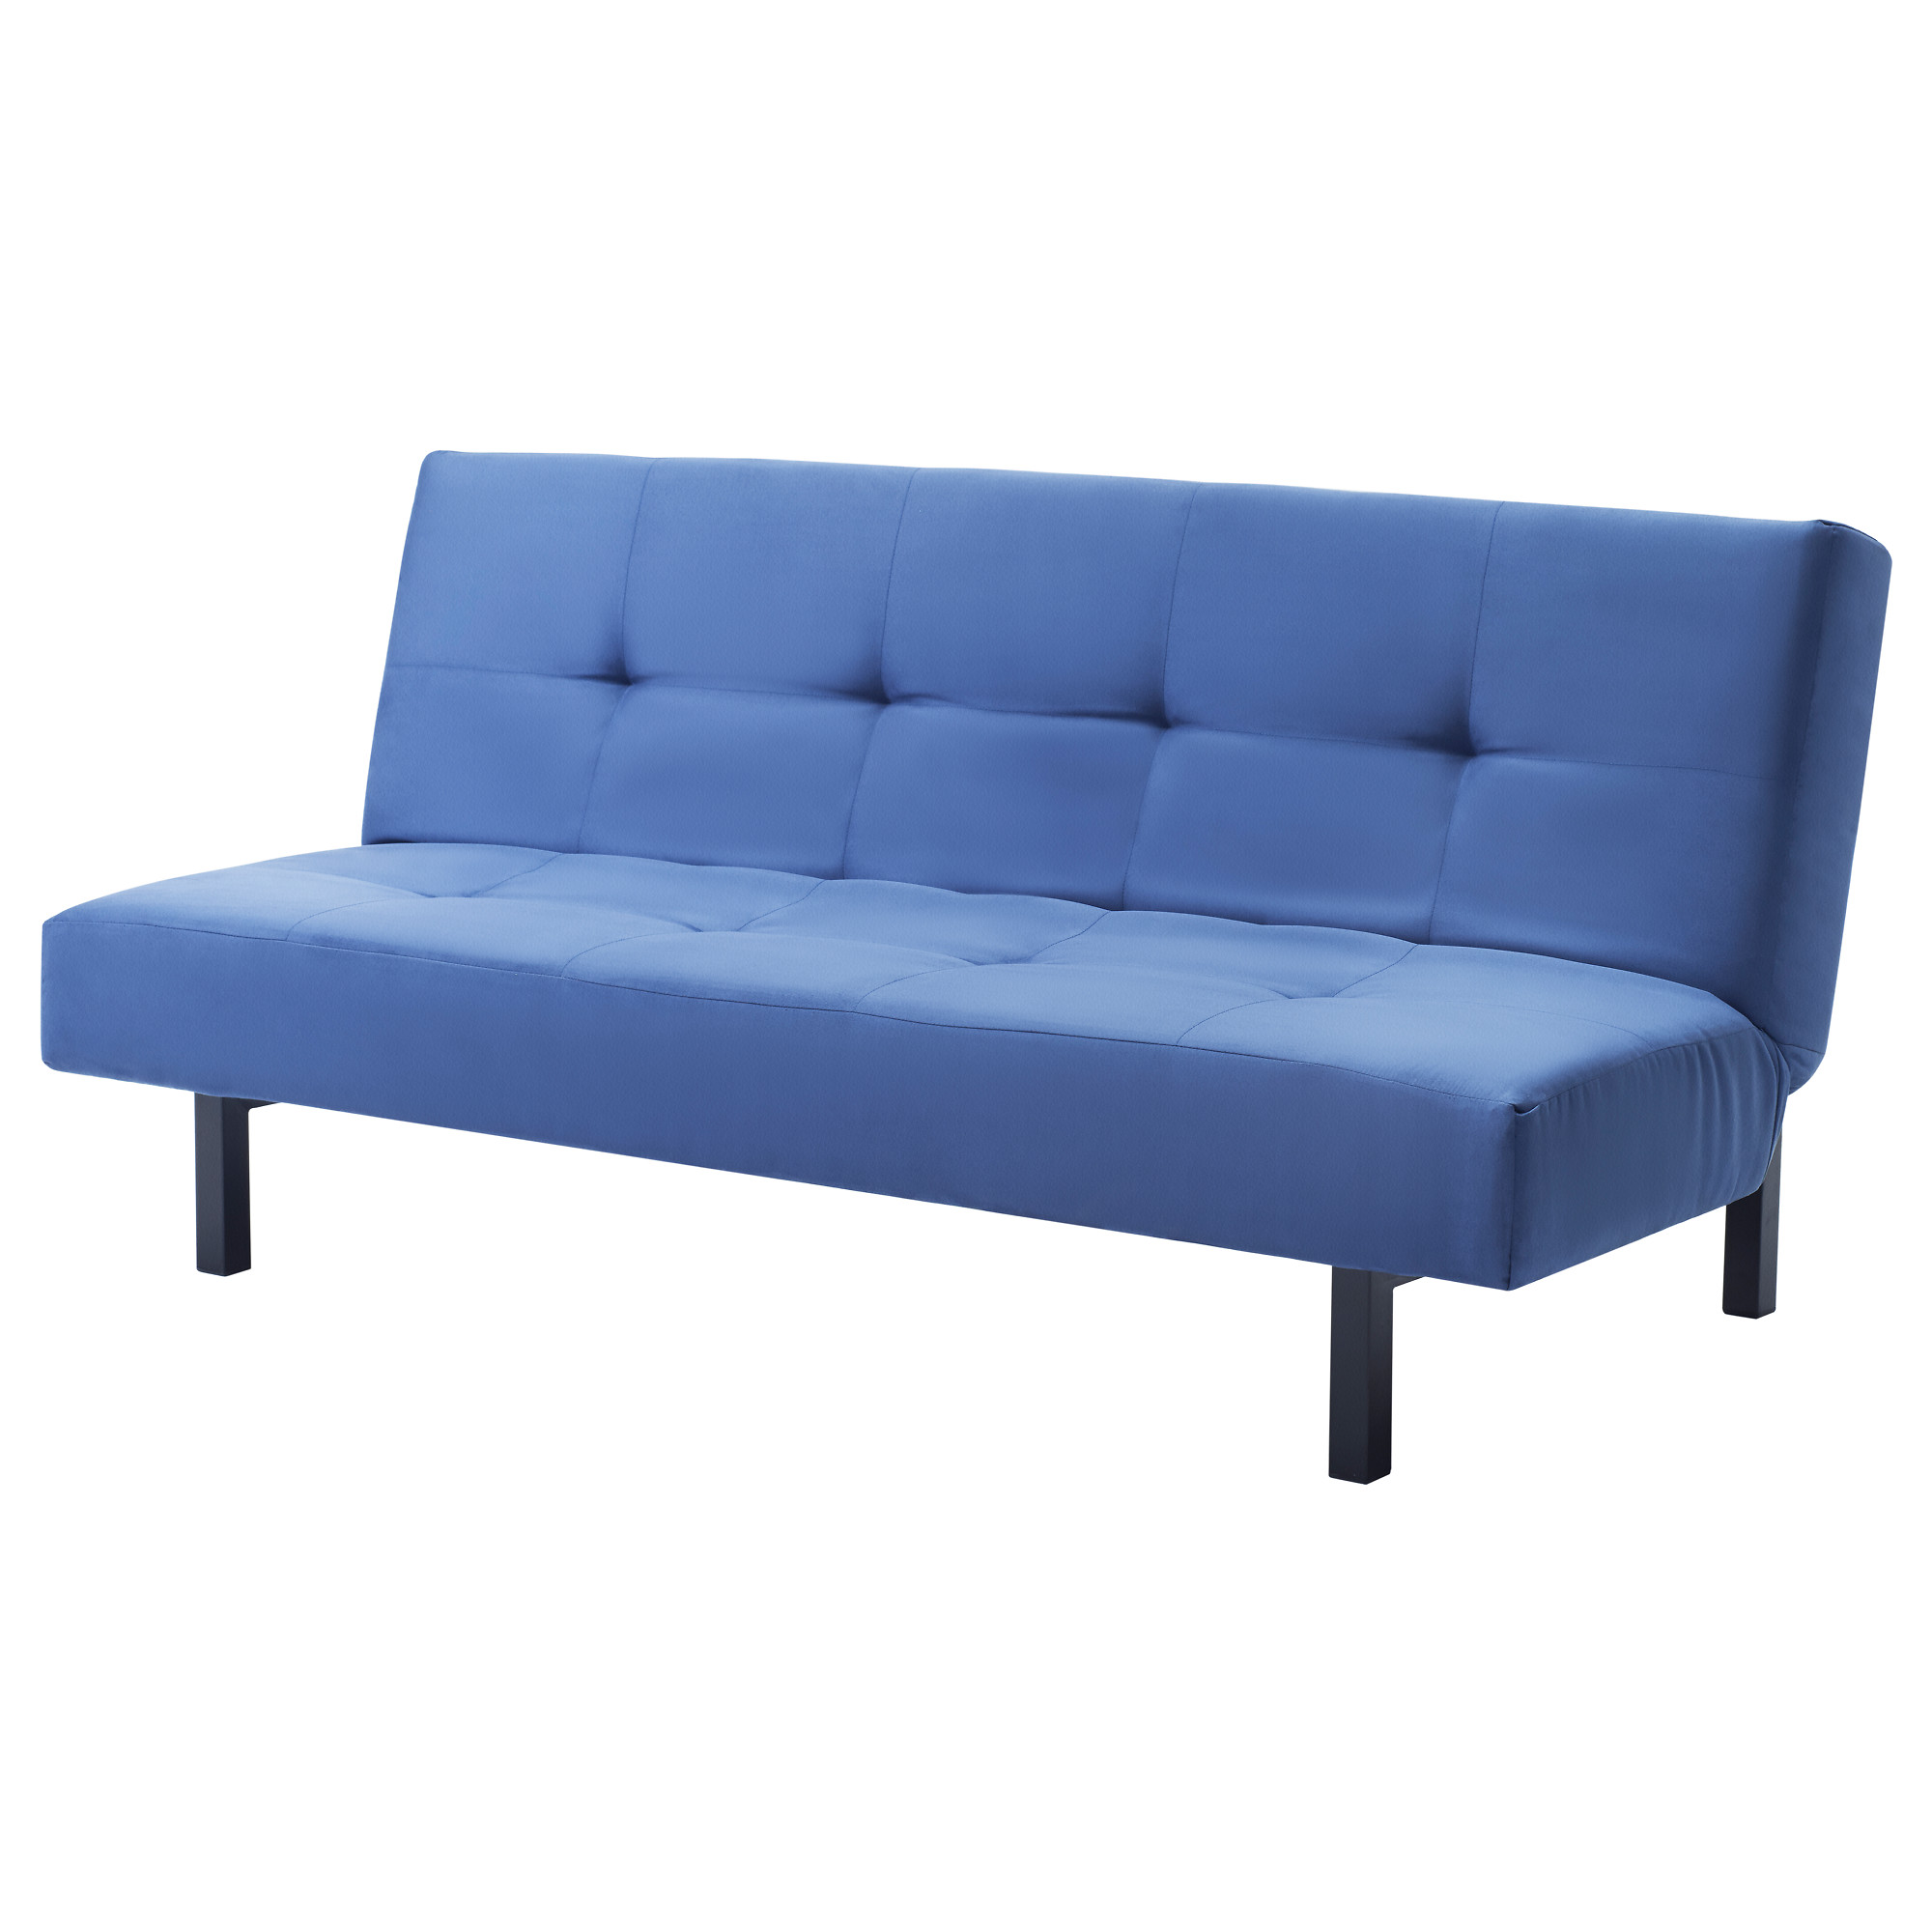 Best sofa sleepers ikea homesfeed for Sofa bed chair